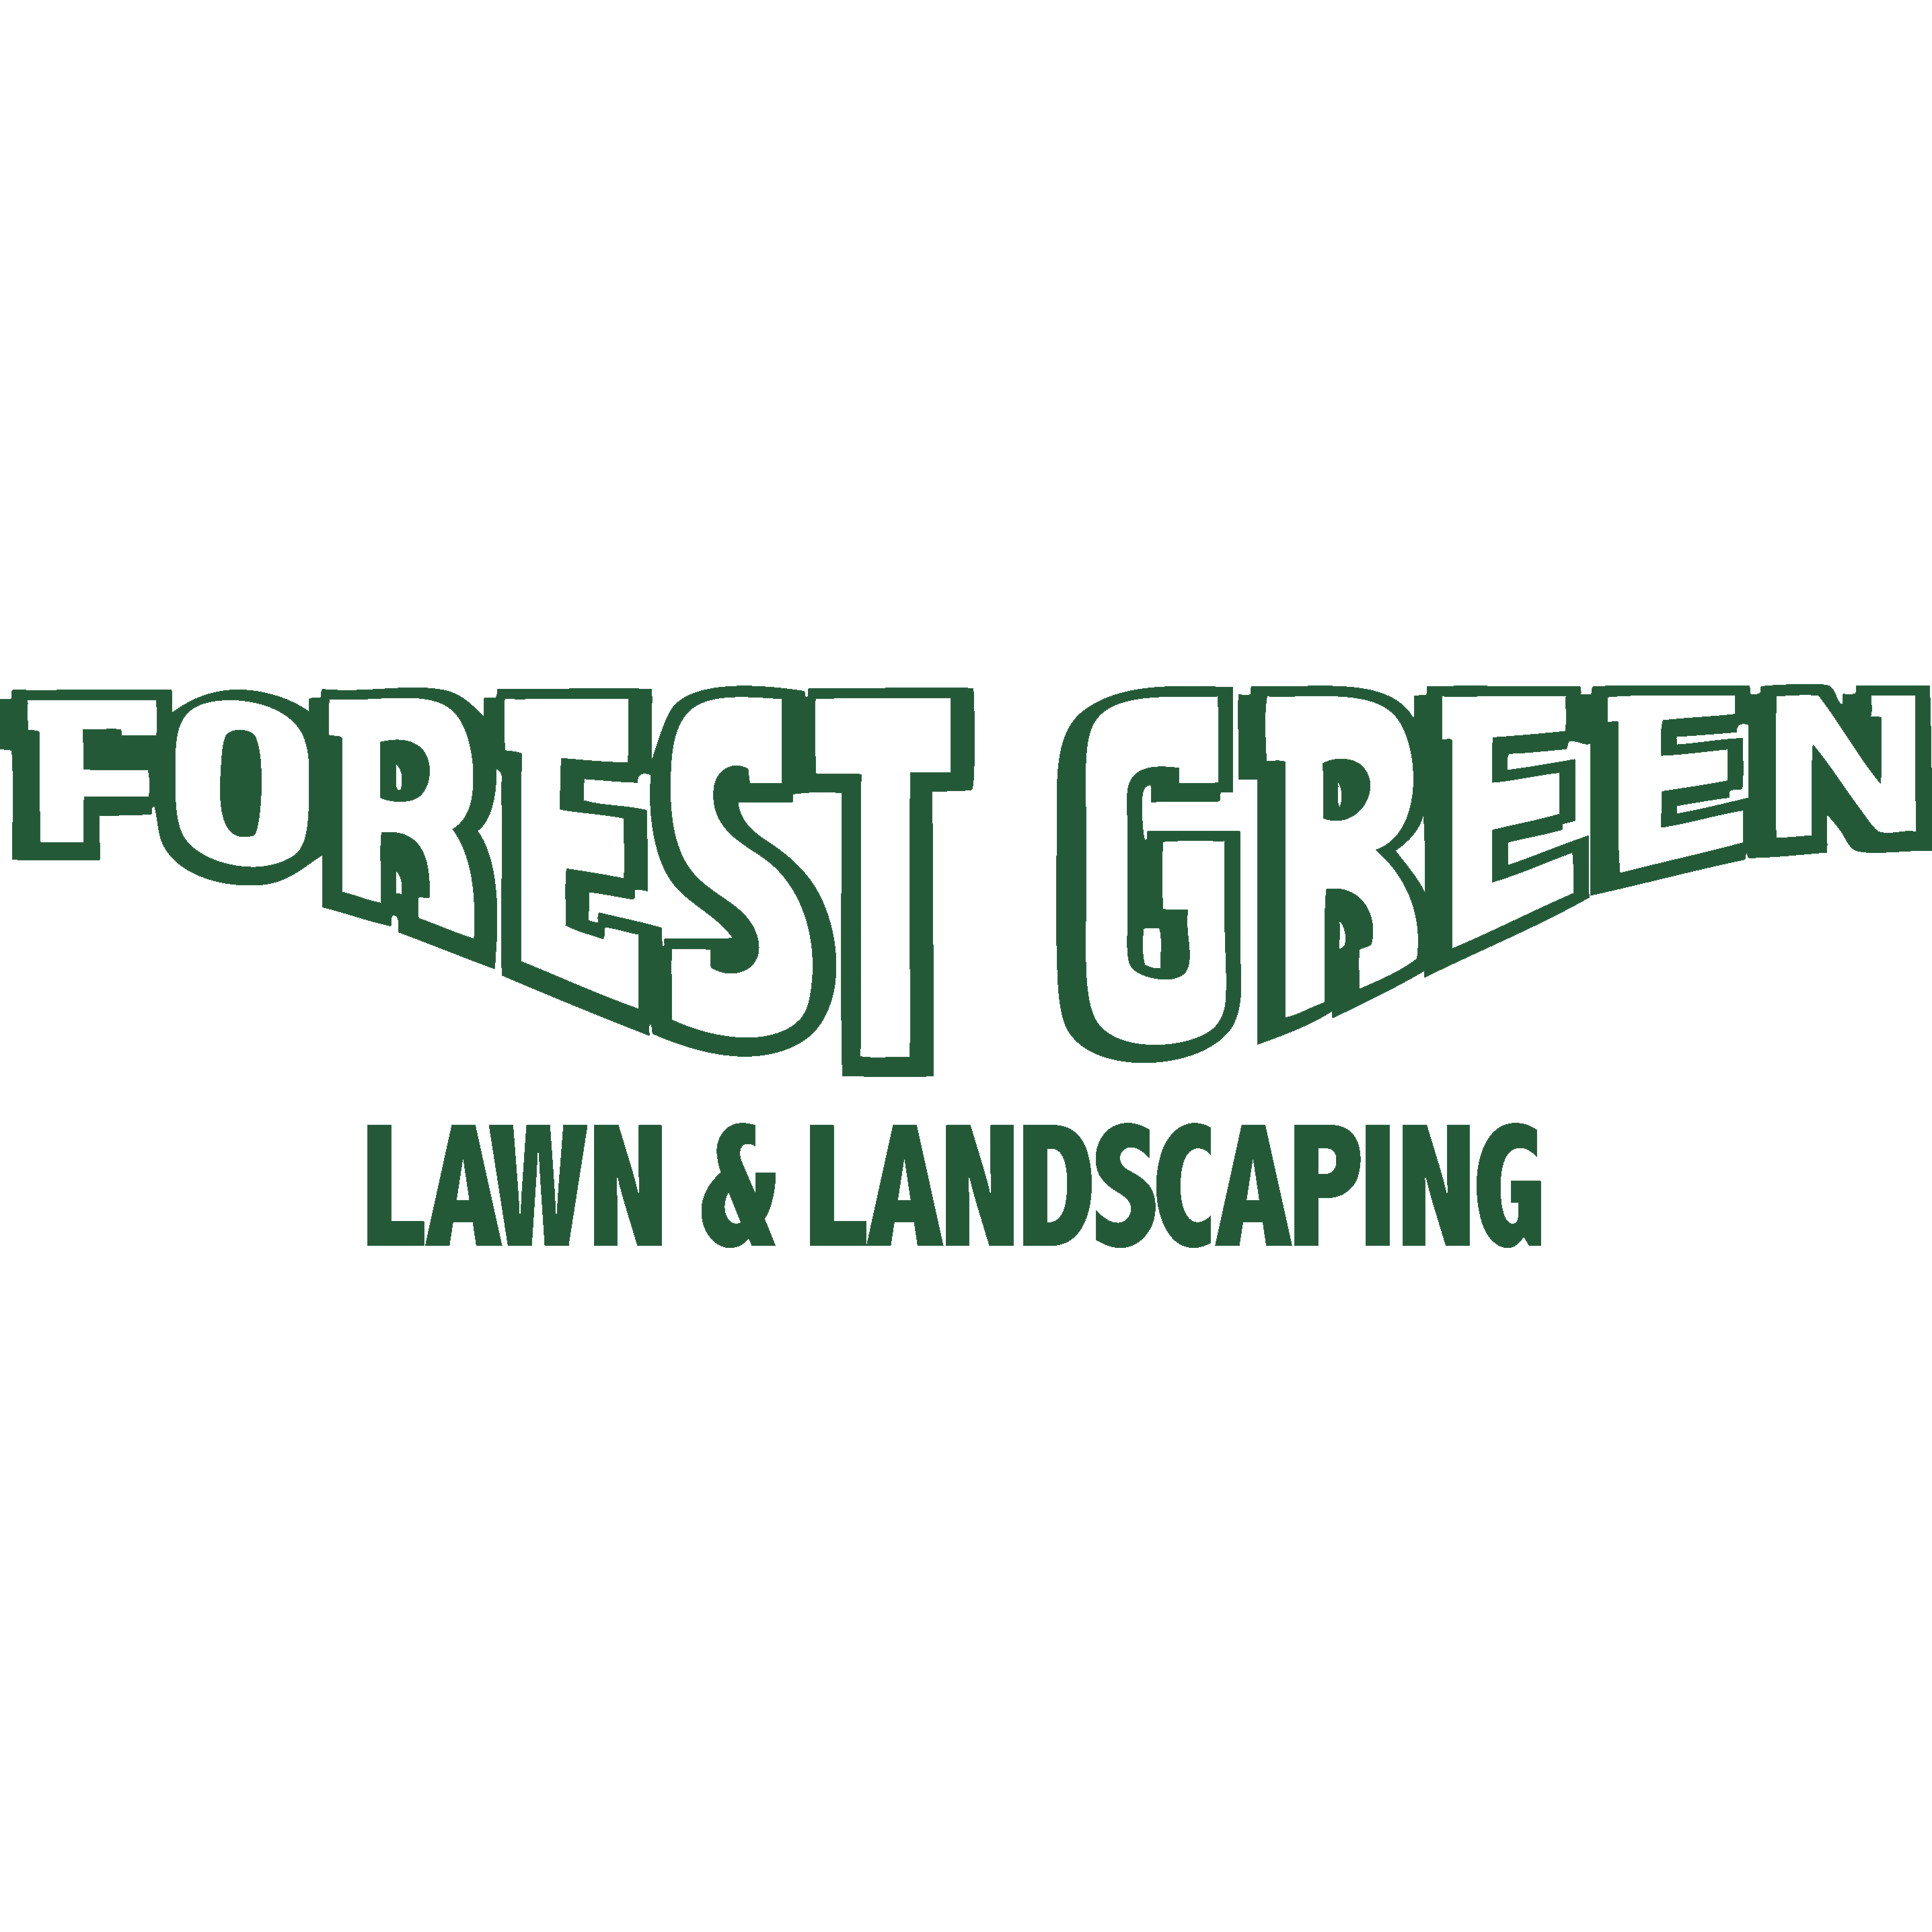 Forest Green Lawn & Landscaping image 14